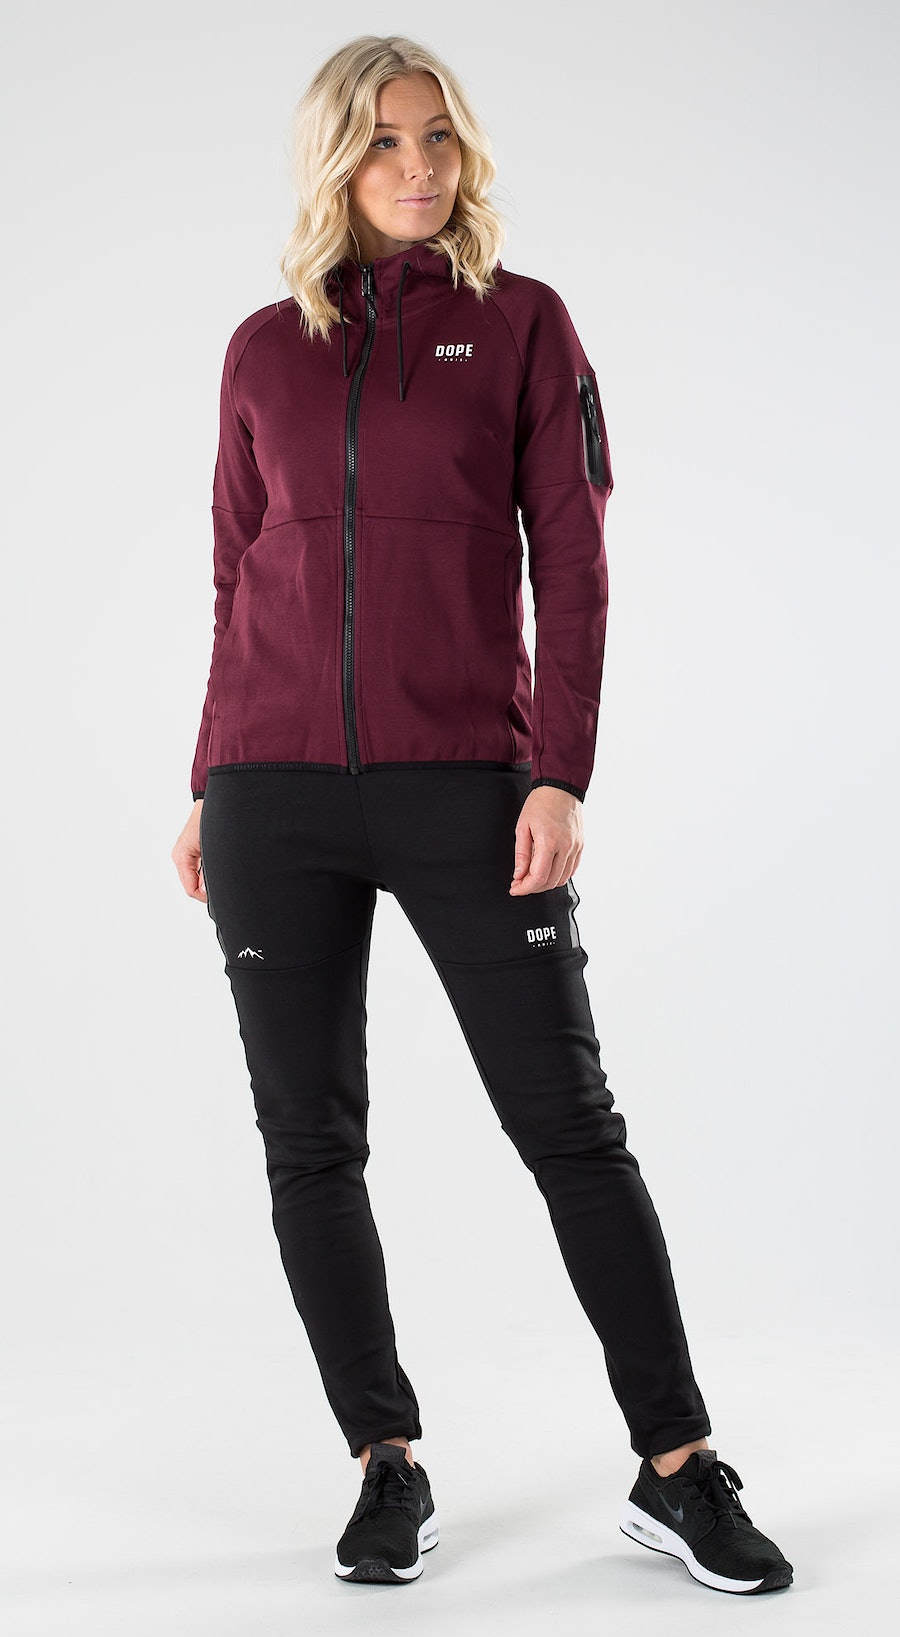 Dope Ronin 2X-UP Zip W Burgundy Outfit Multi